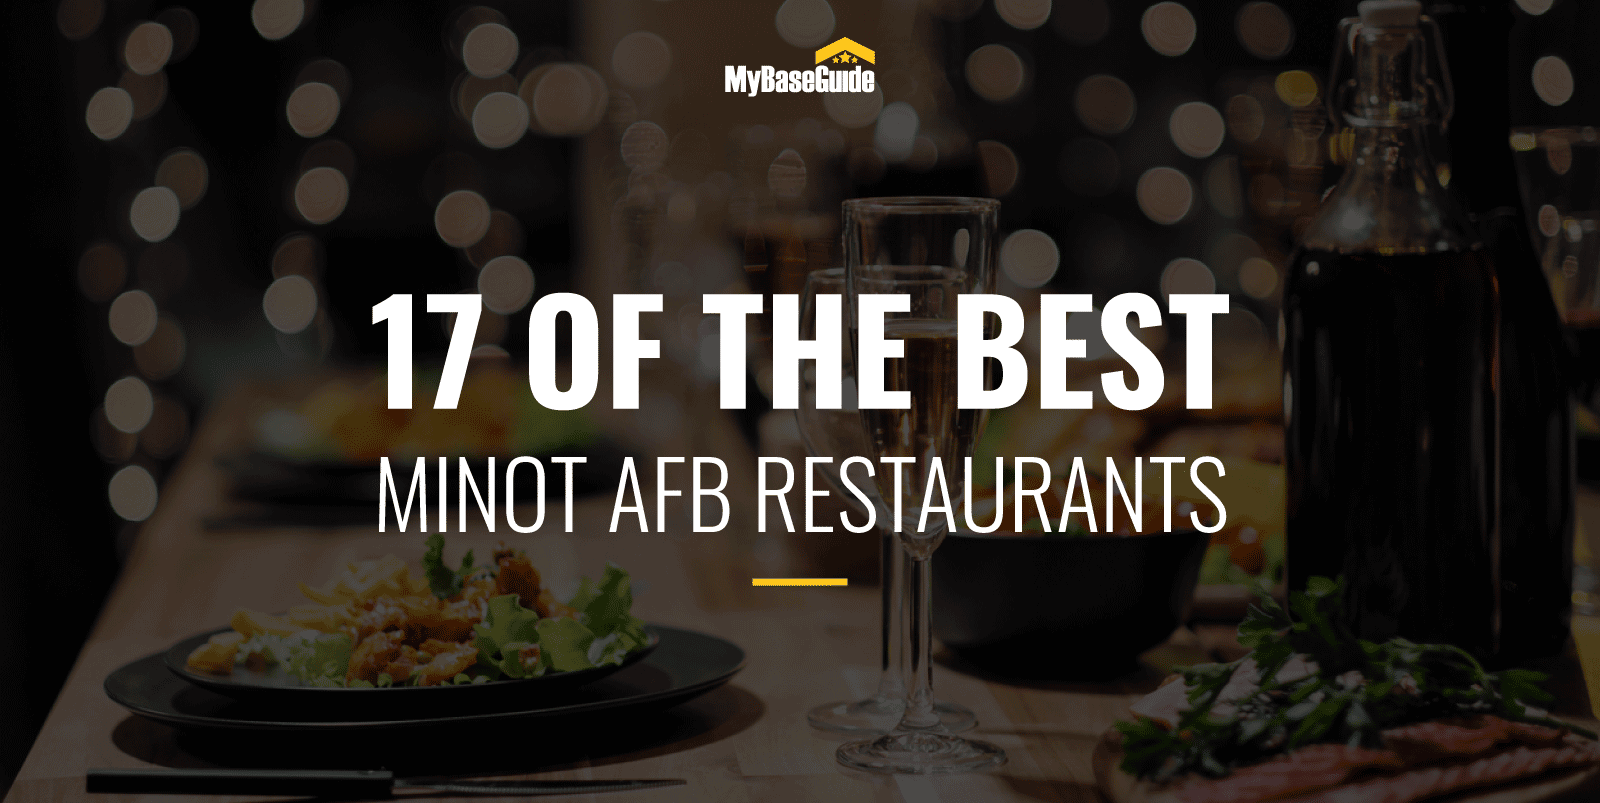 17 of the Best Minot AFB Restaurants